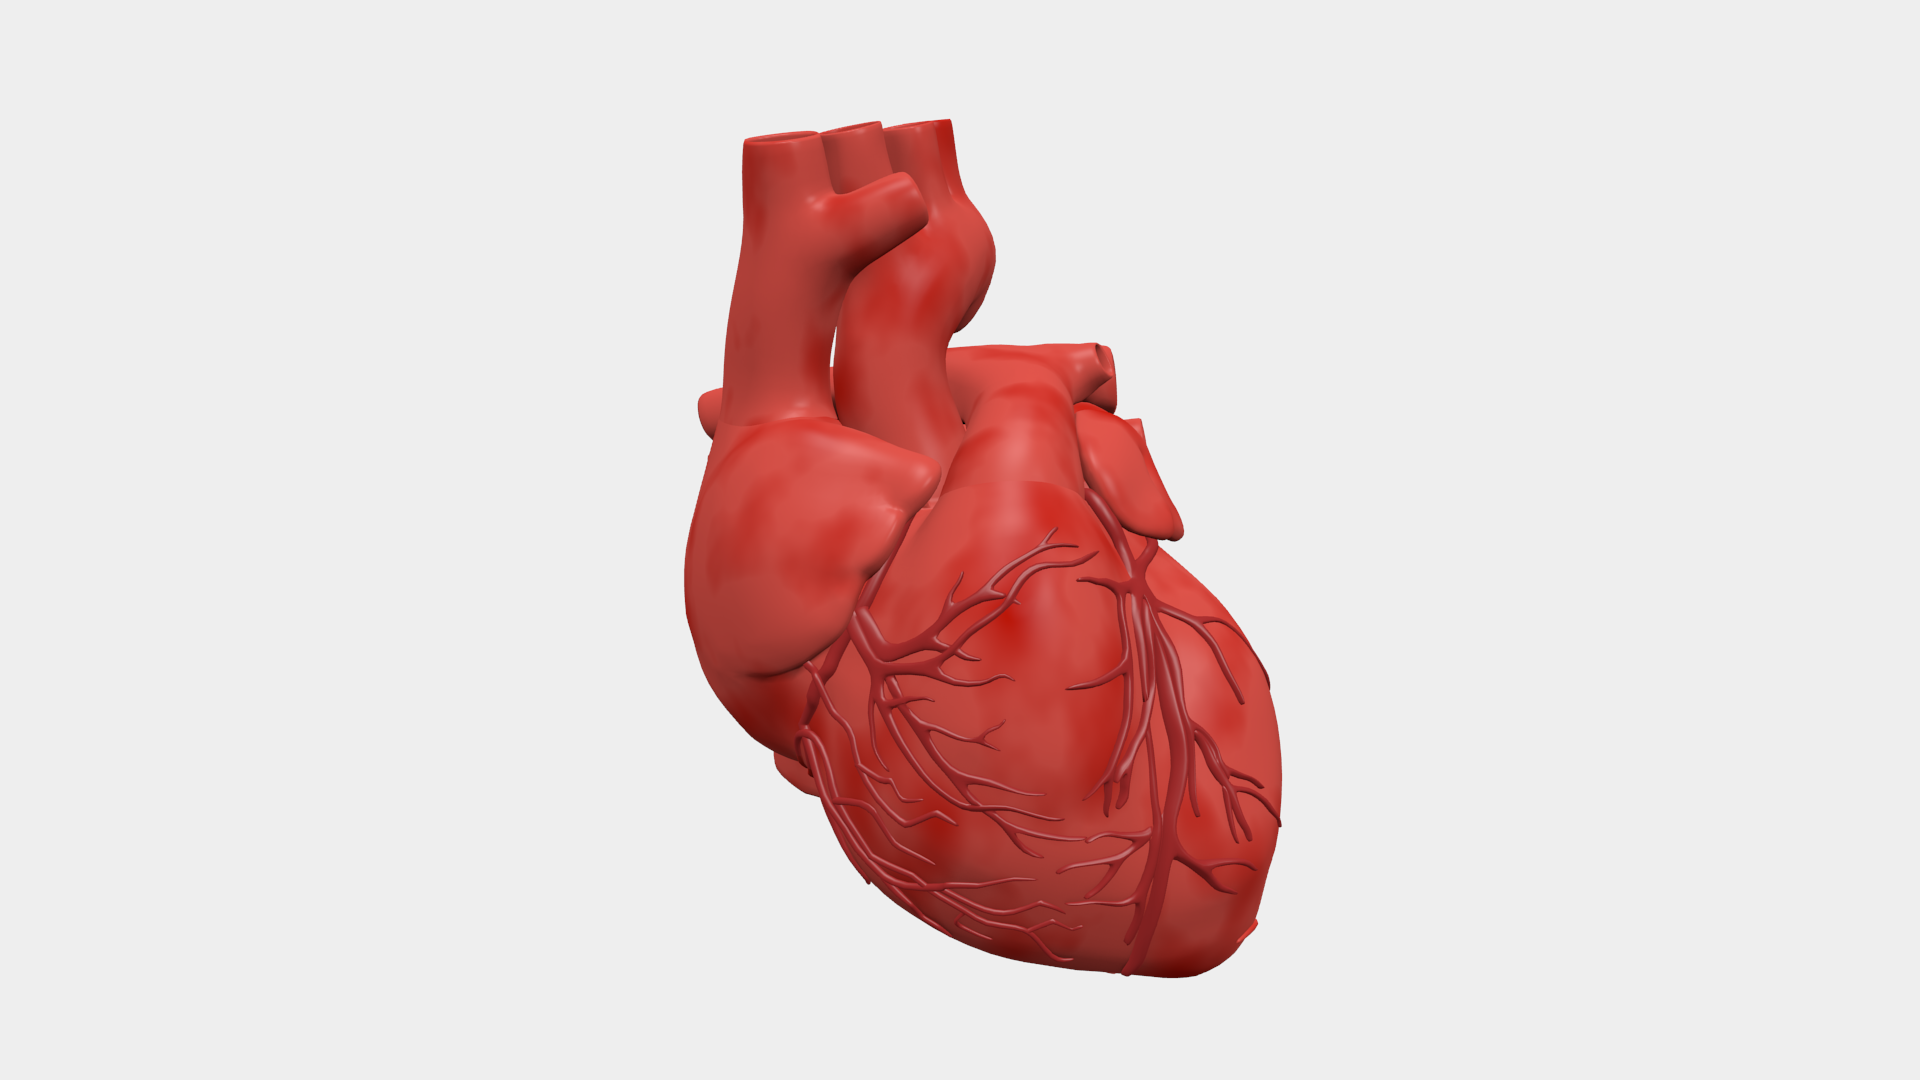 Animated human heart - photo#24